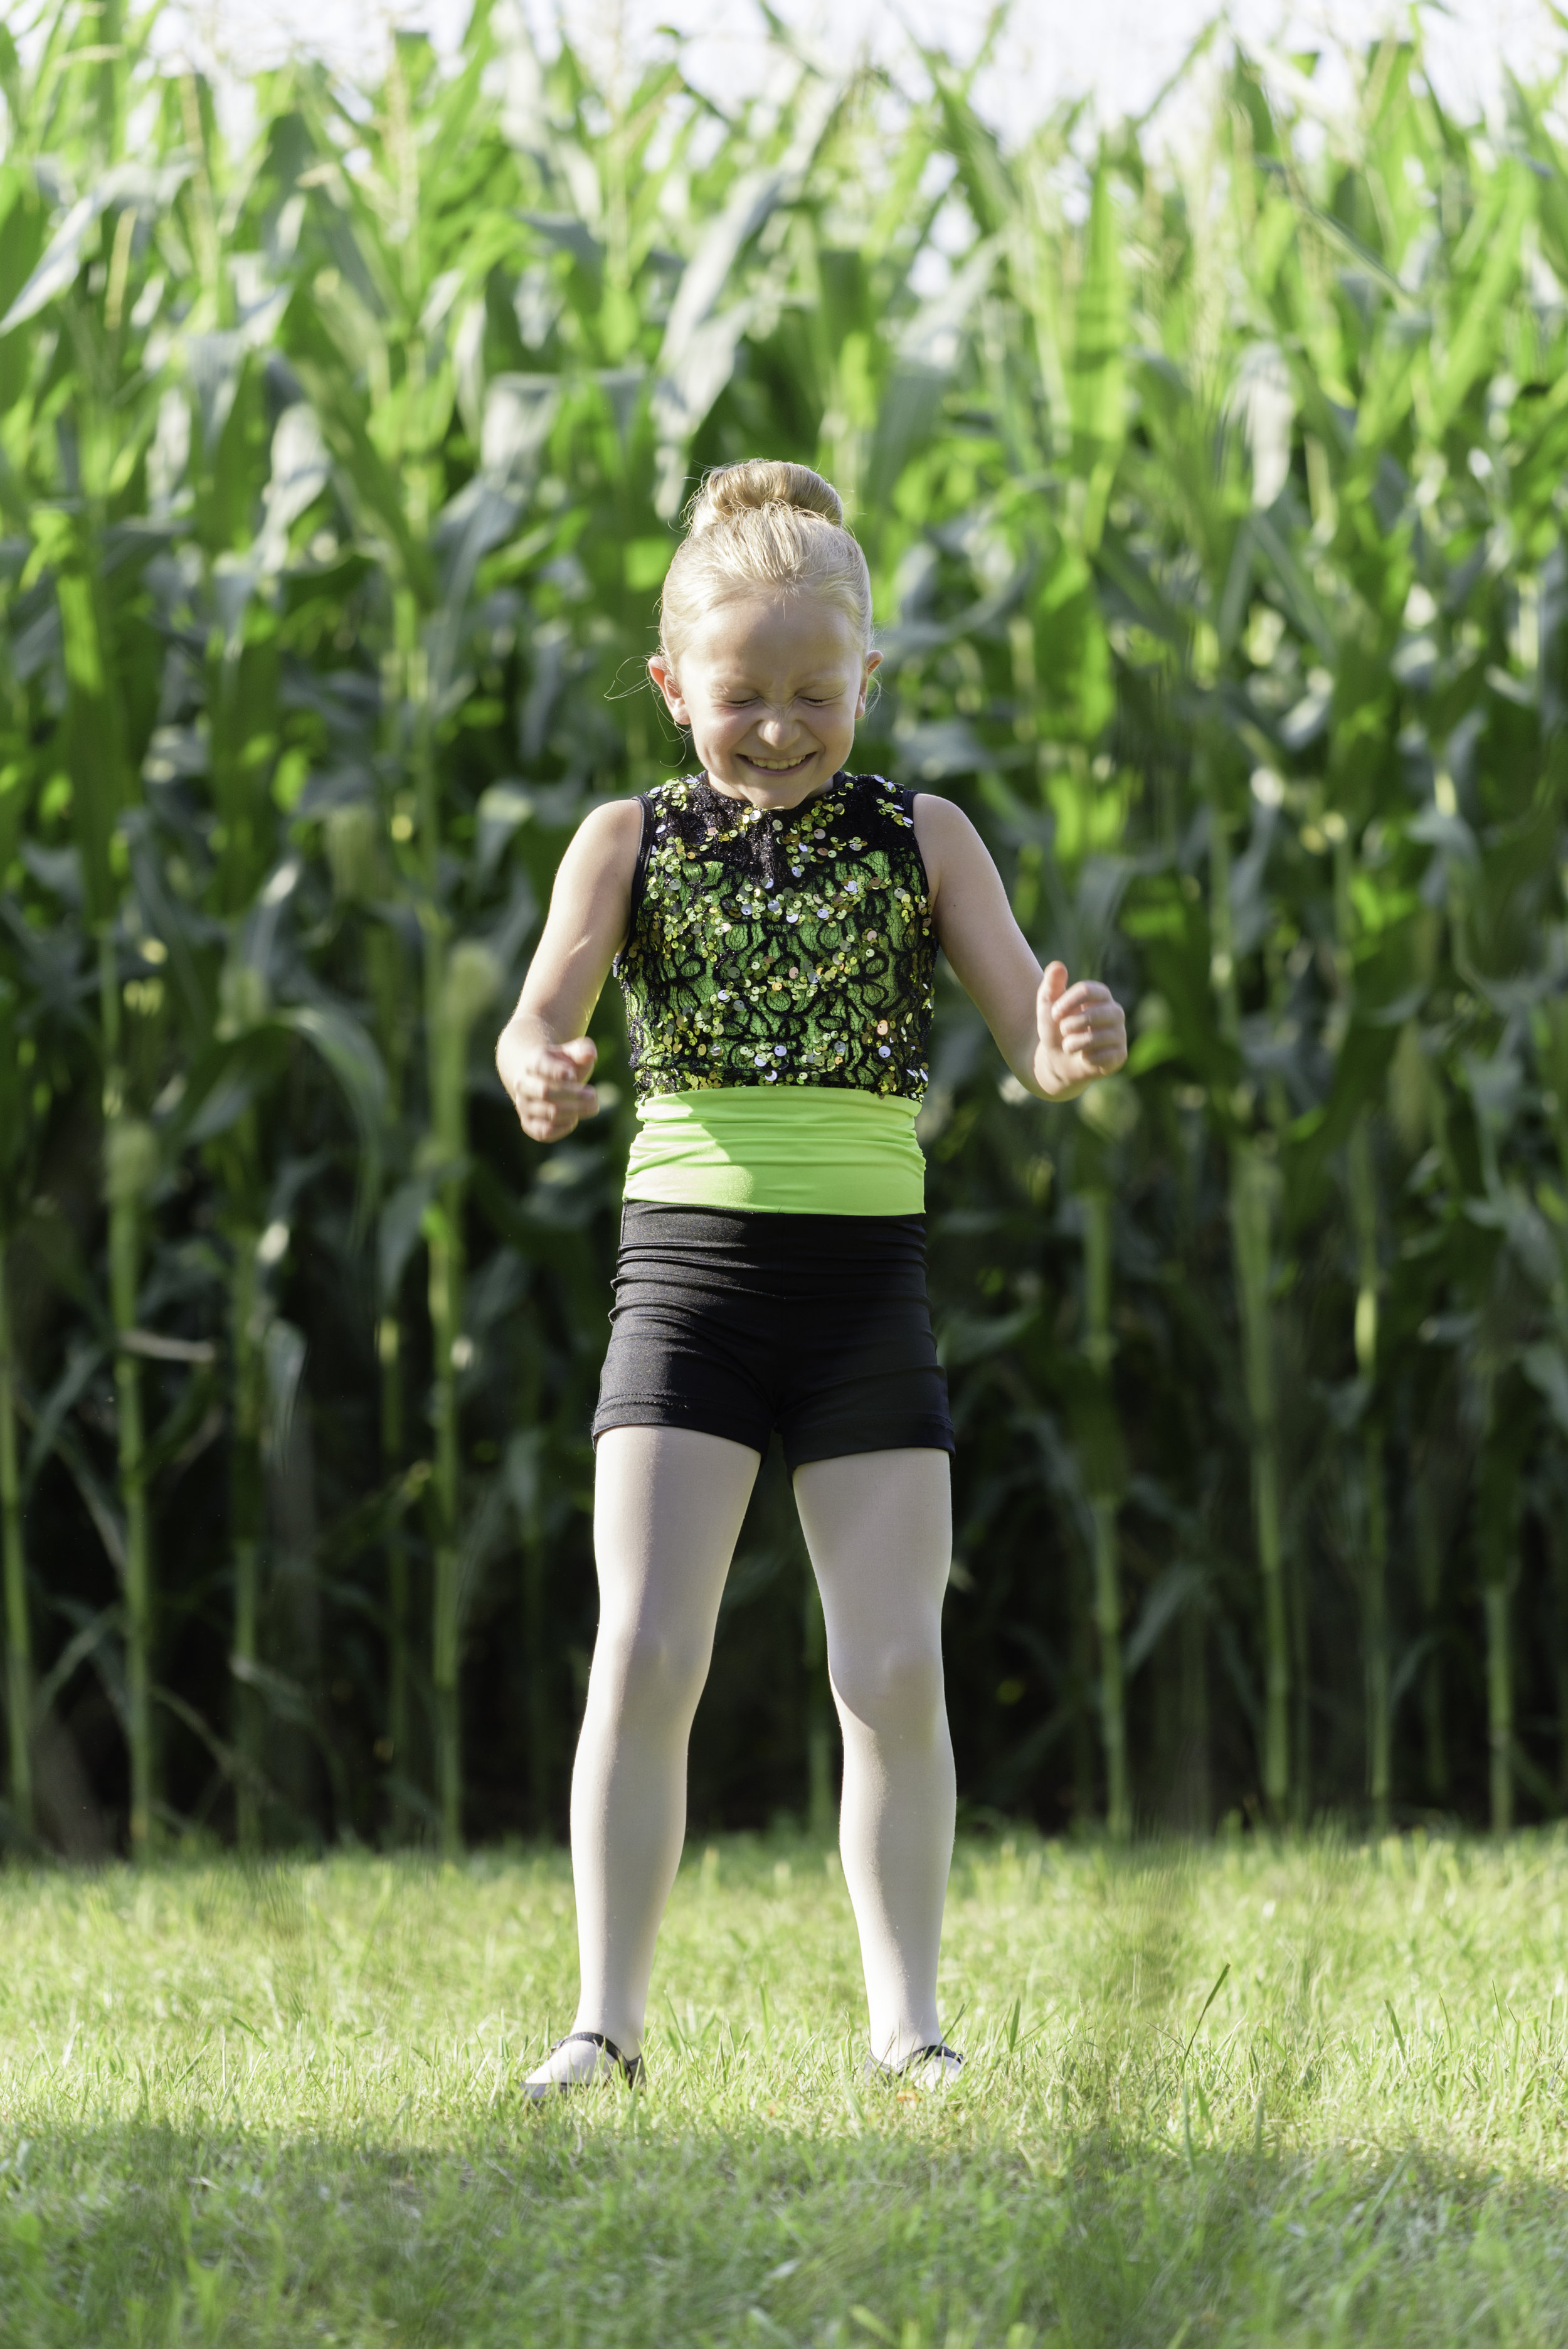 Eberle Images | Child Photography | Selinsgrove PA